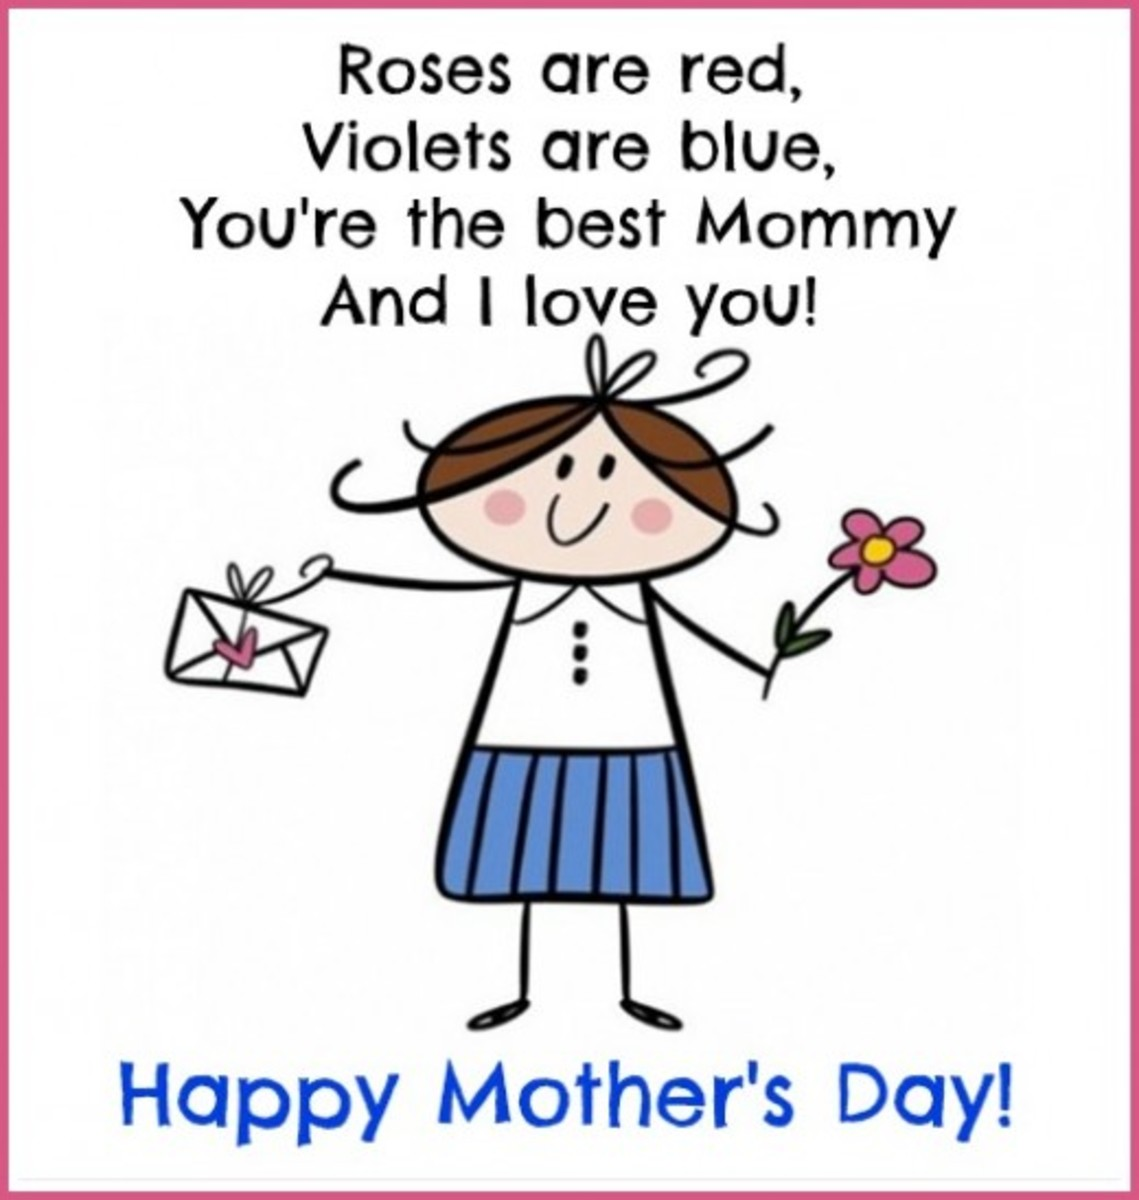 Mother's Day Poem on a Card